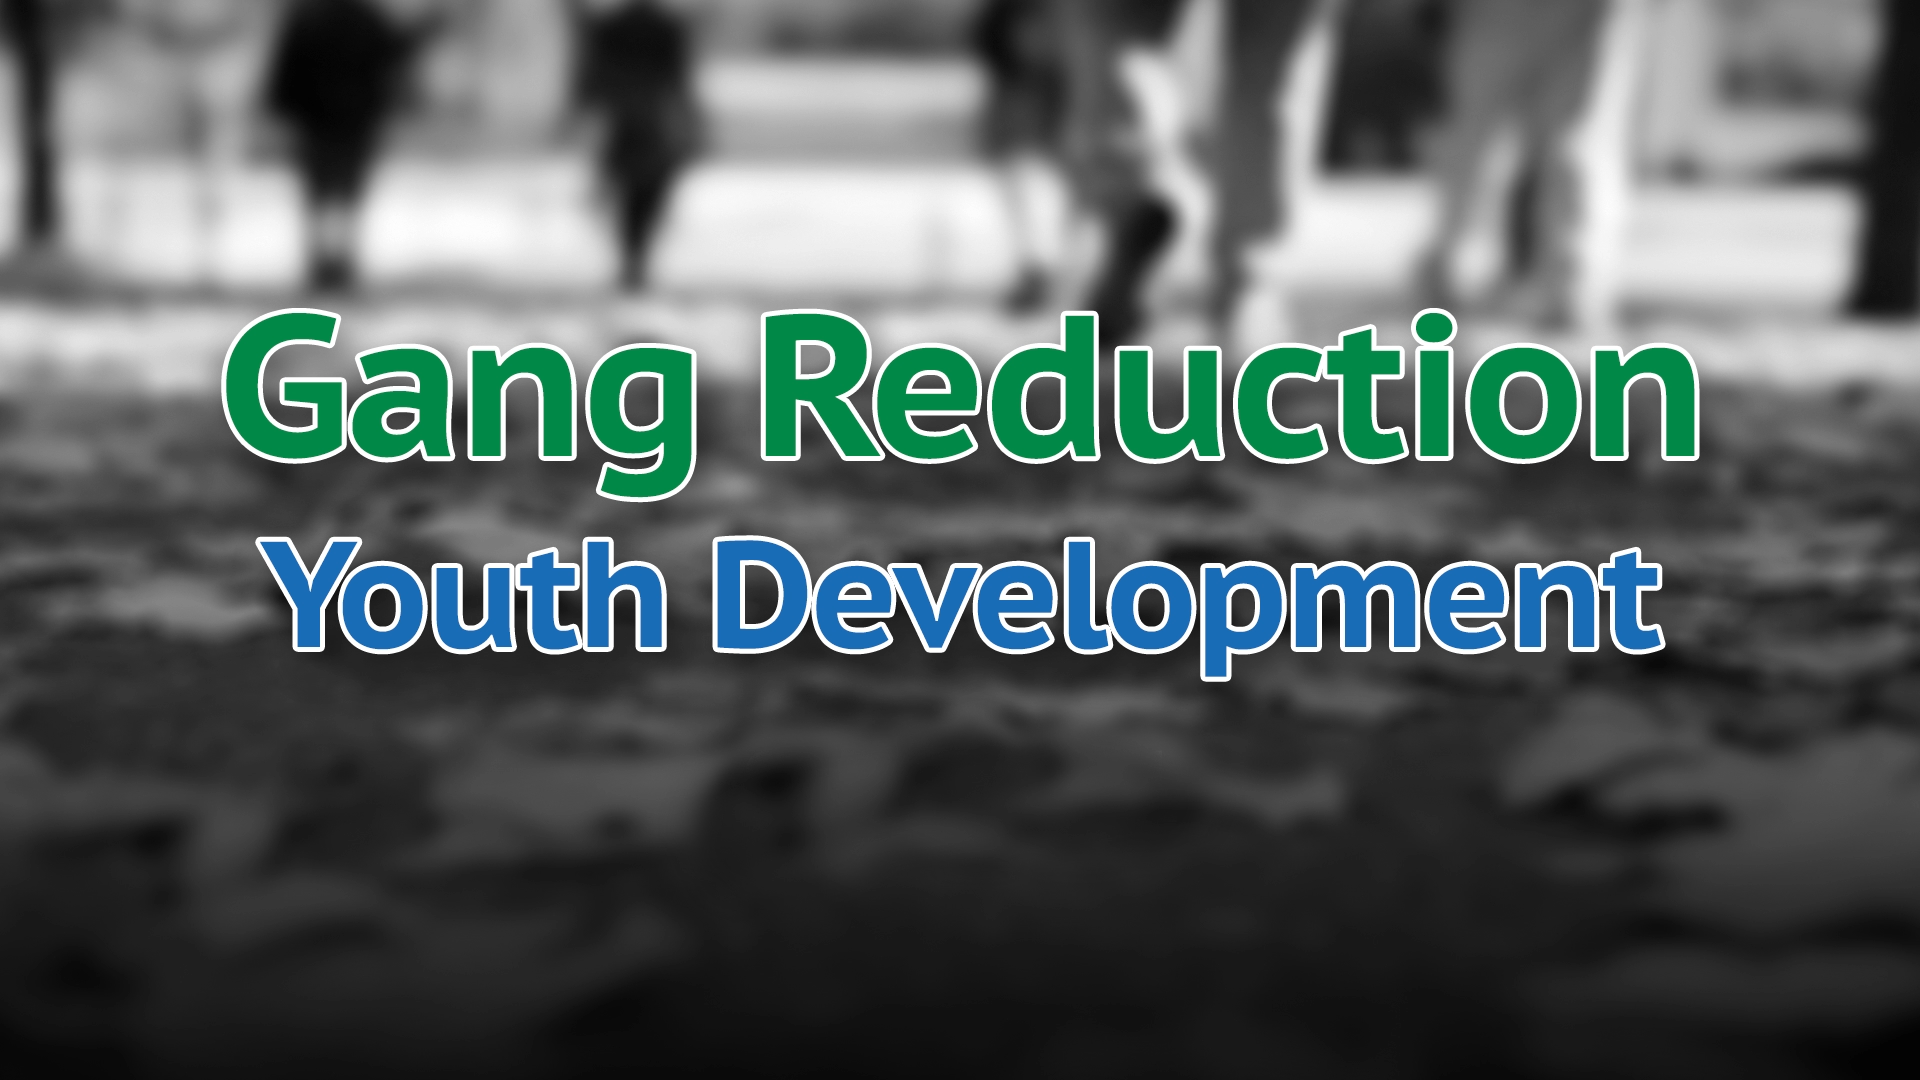 Gang Reduction & Youth Development Forum